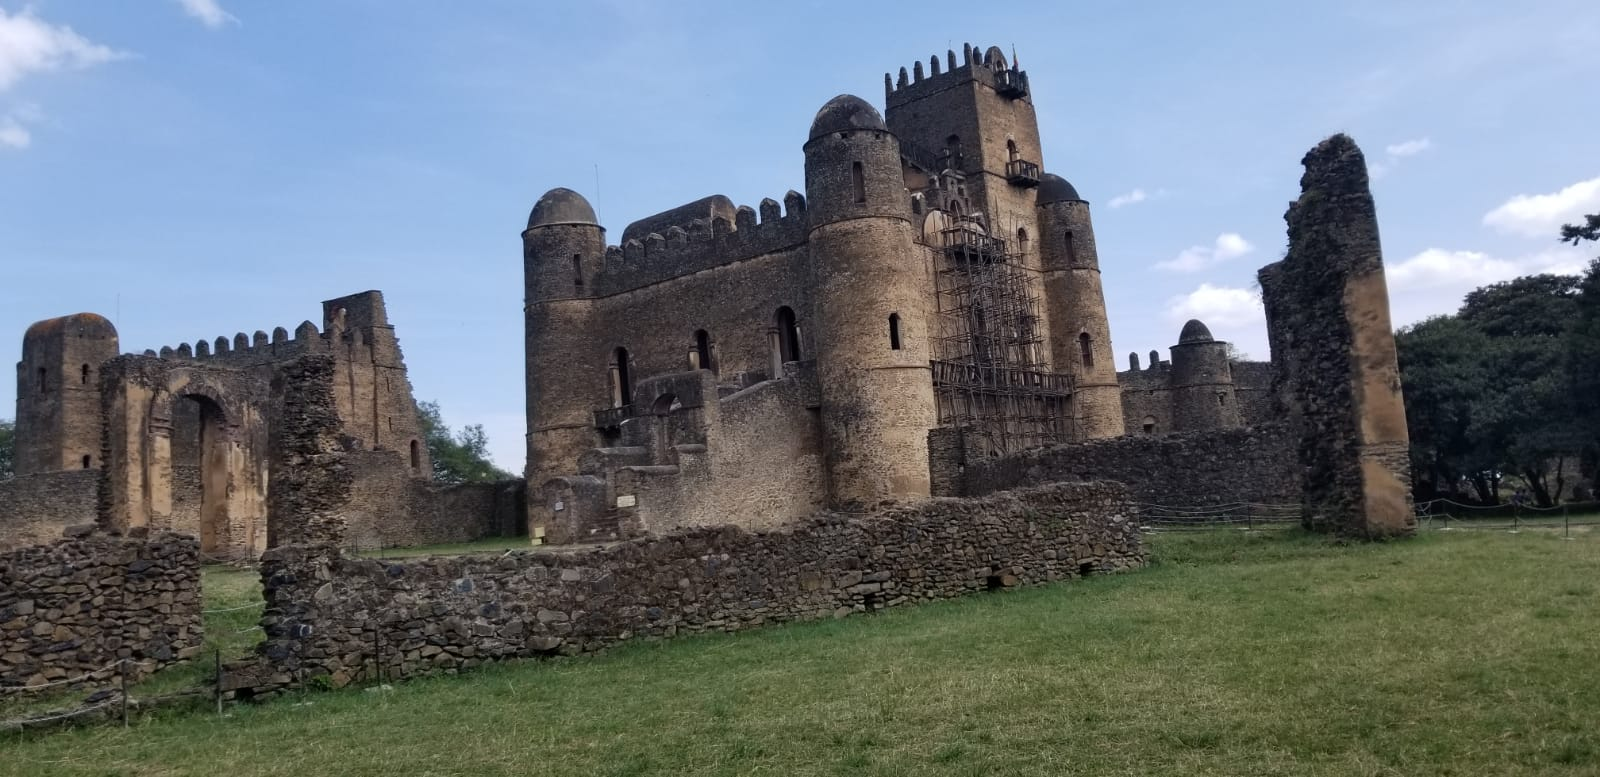 WhatsApp_Image_2020-05-18_at_12.26.17_4.jpeg